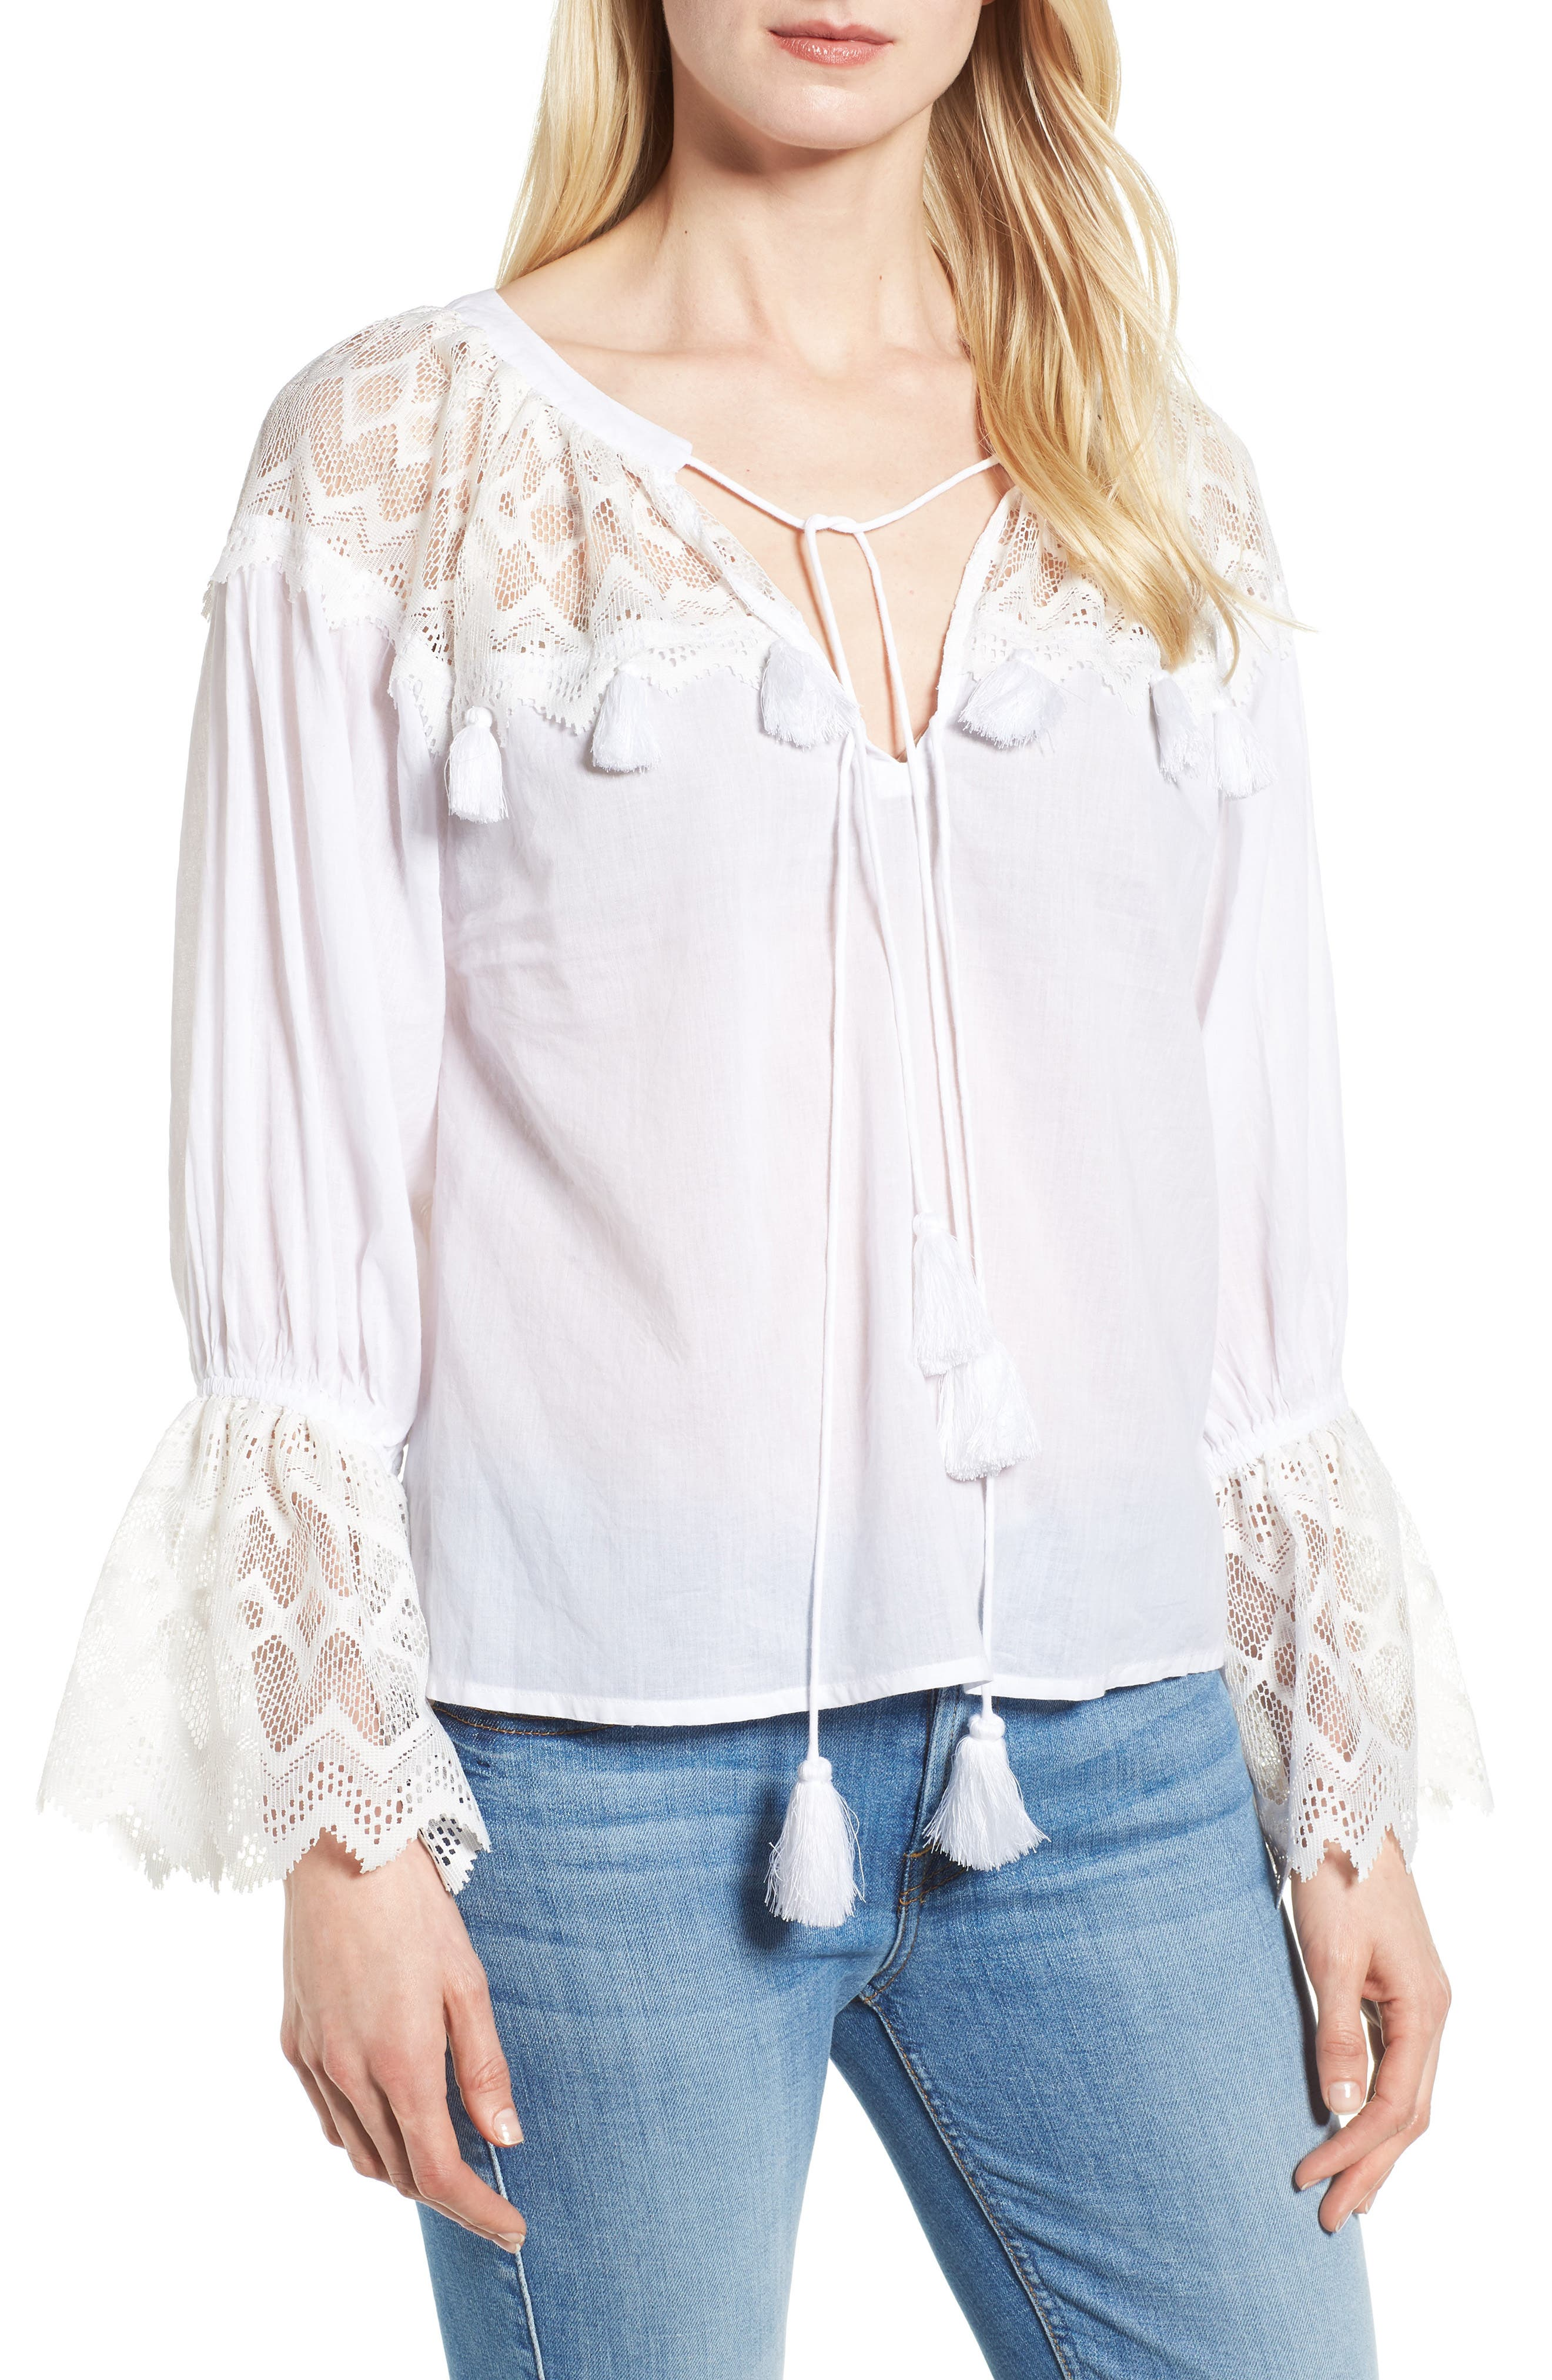 KAS NEW YORK Berkley White Lace Cotton Blend Top